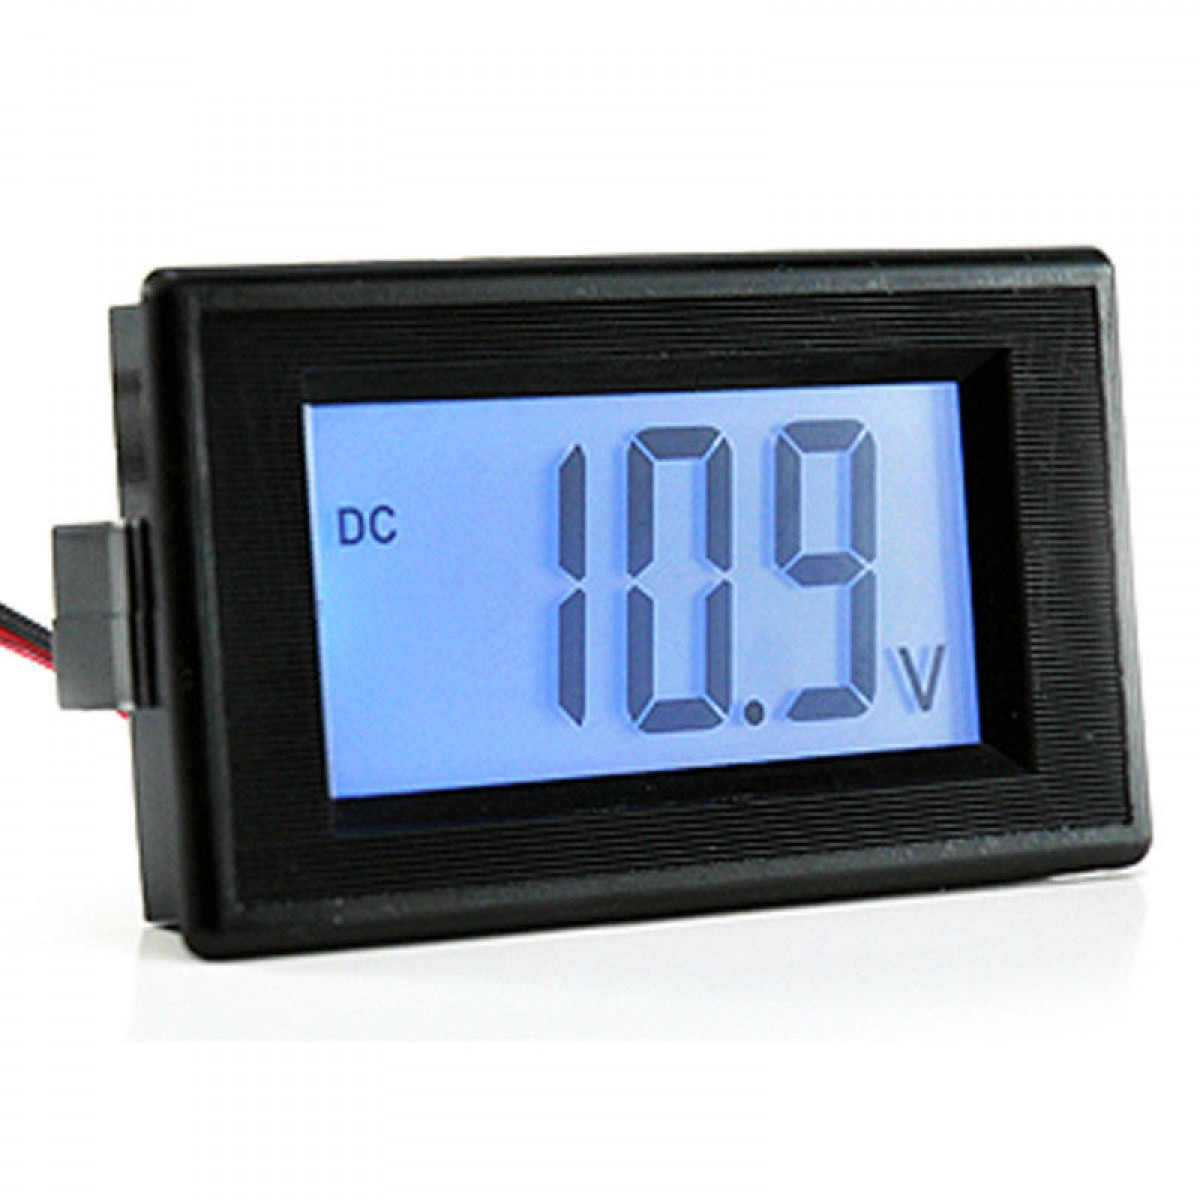 Lcd Panel Meter : Soroko trading ltd smart gadgets electronics spy